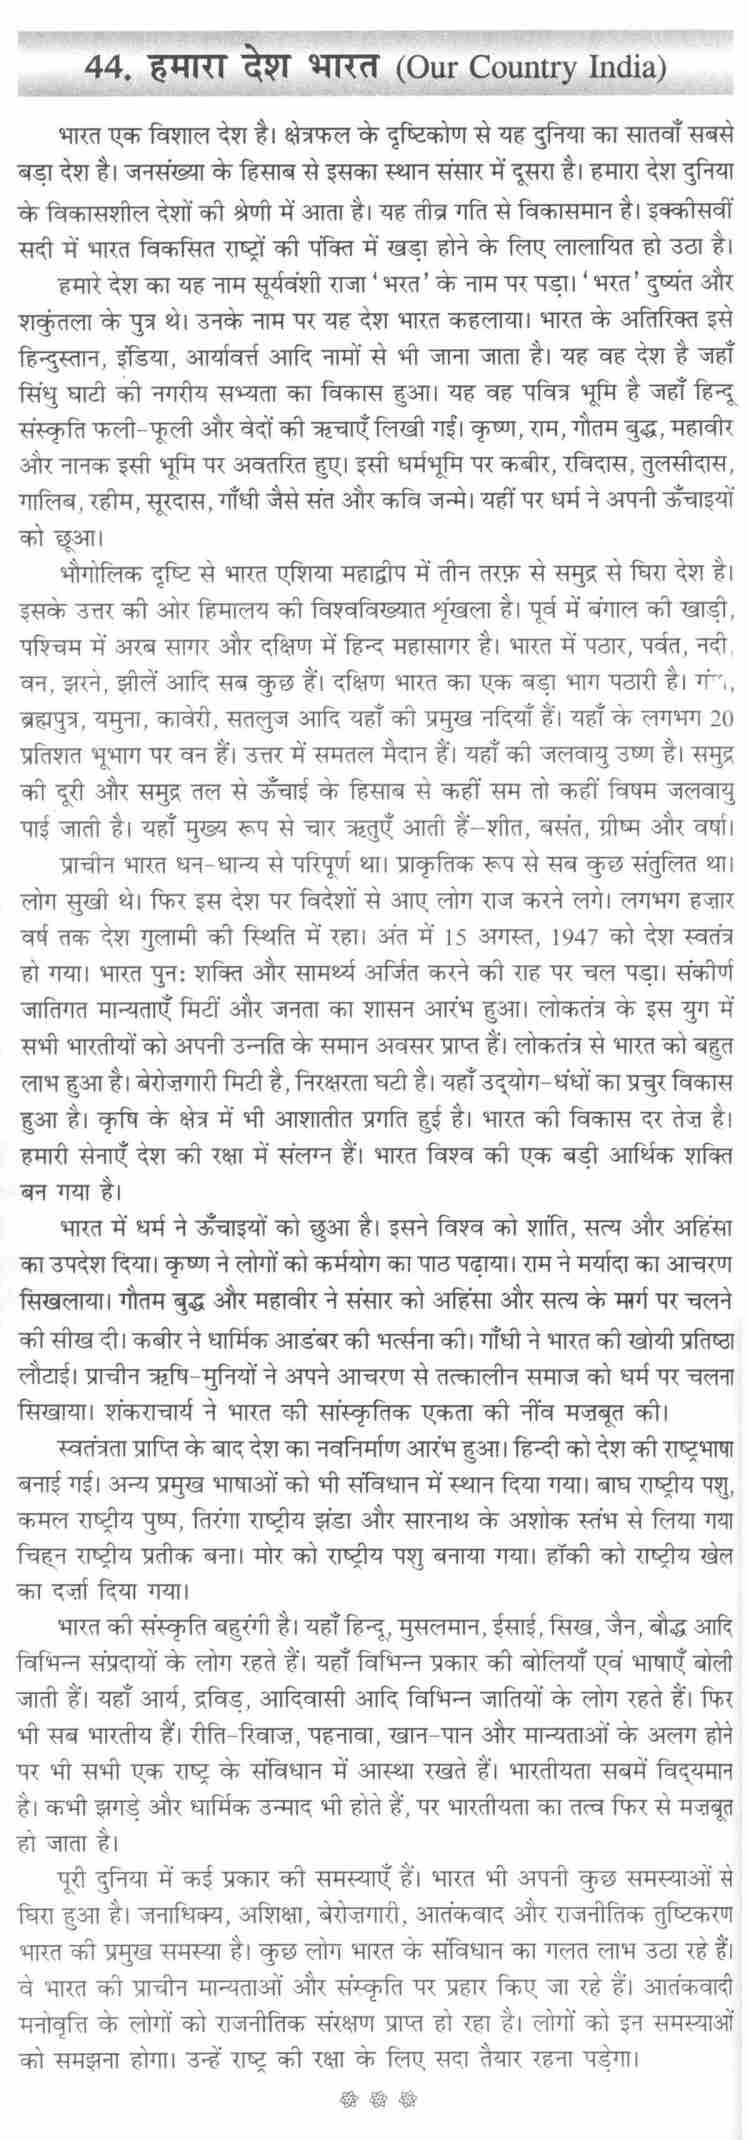 015 My Country Essay In Hindi Page201 ~ Thatsnotus